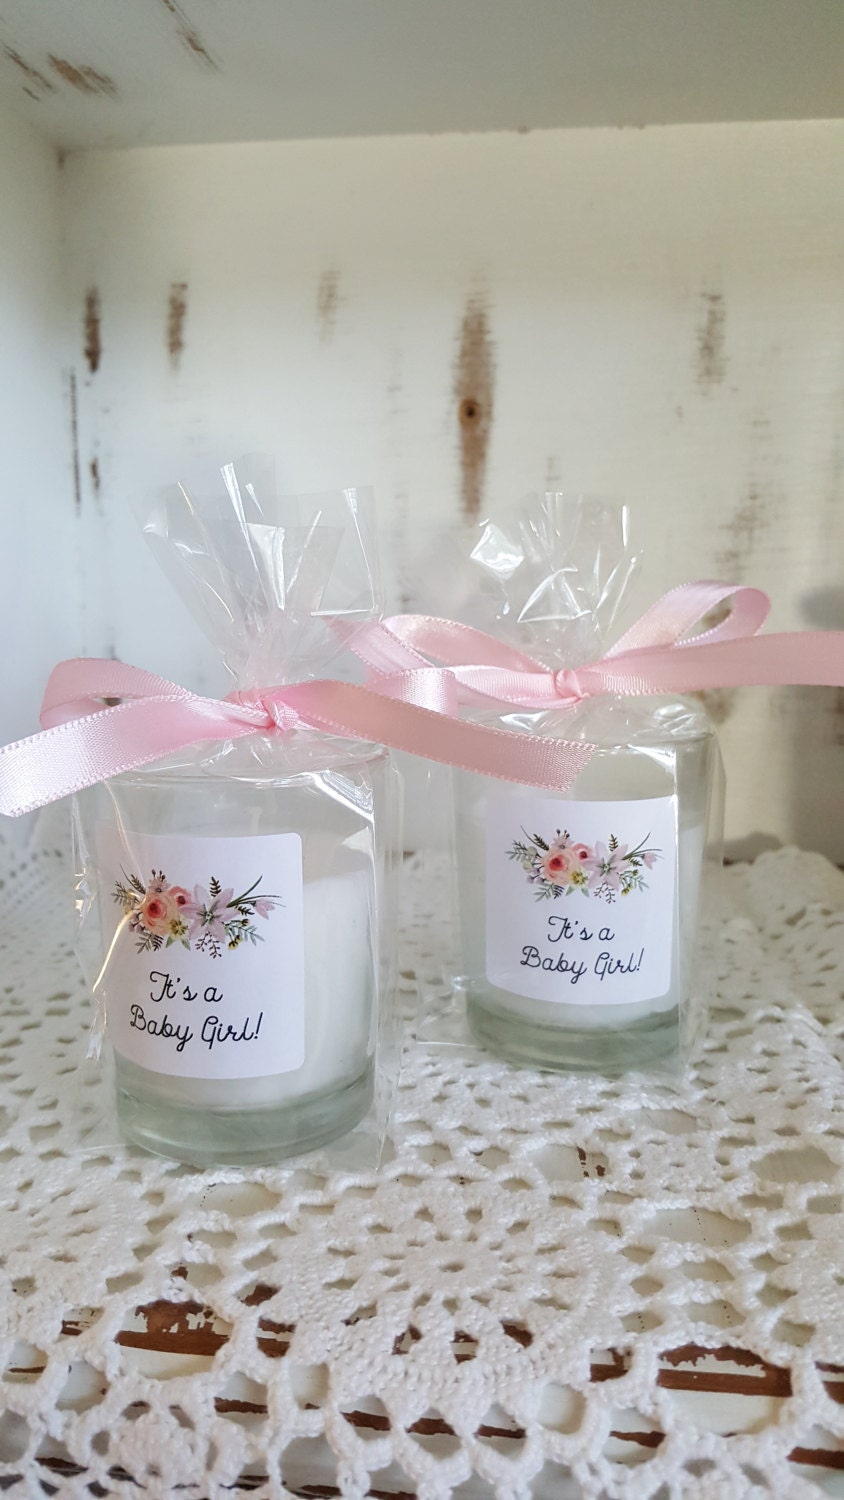 Baby Shower Favors It\'s a Girl. Candle favors for a Baby